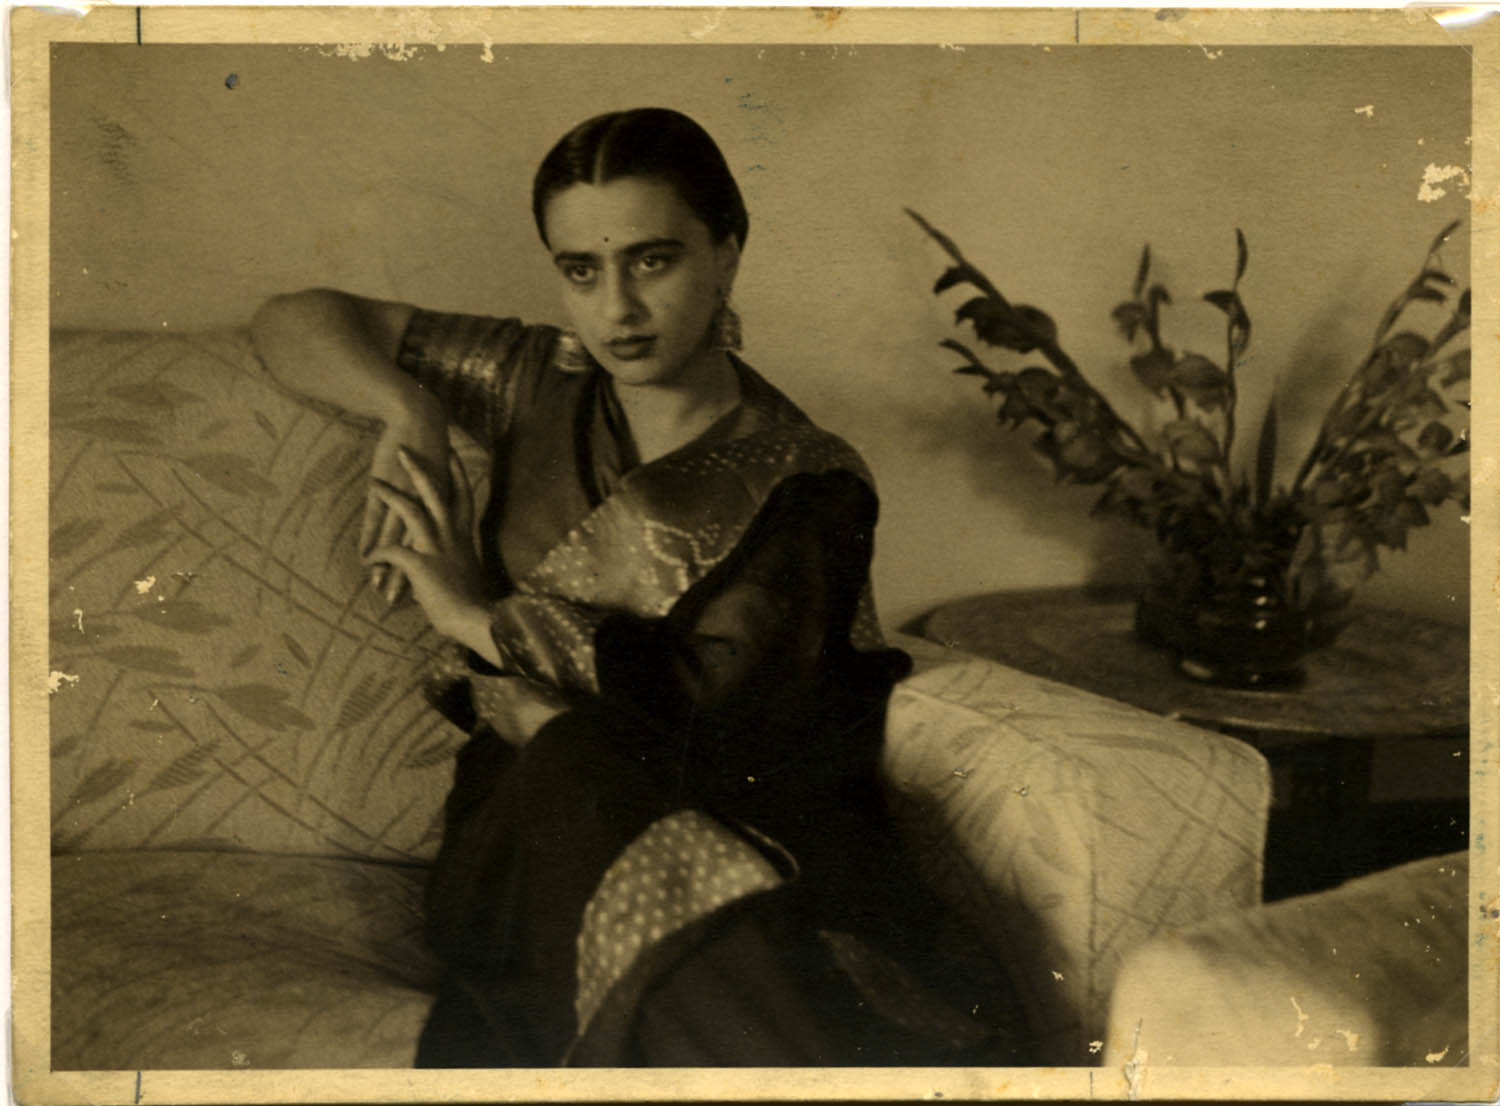 Umrao Sher-Gil,  Amrita seated in sari on couch,  1941. Courtesy of the Umrao Sher Gil Estate.